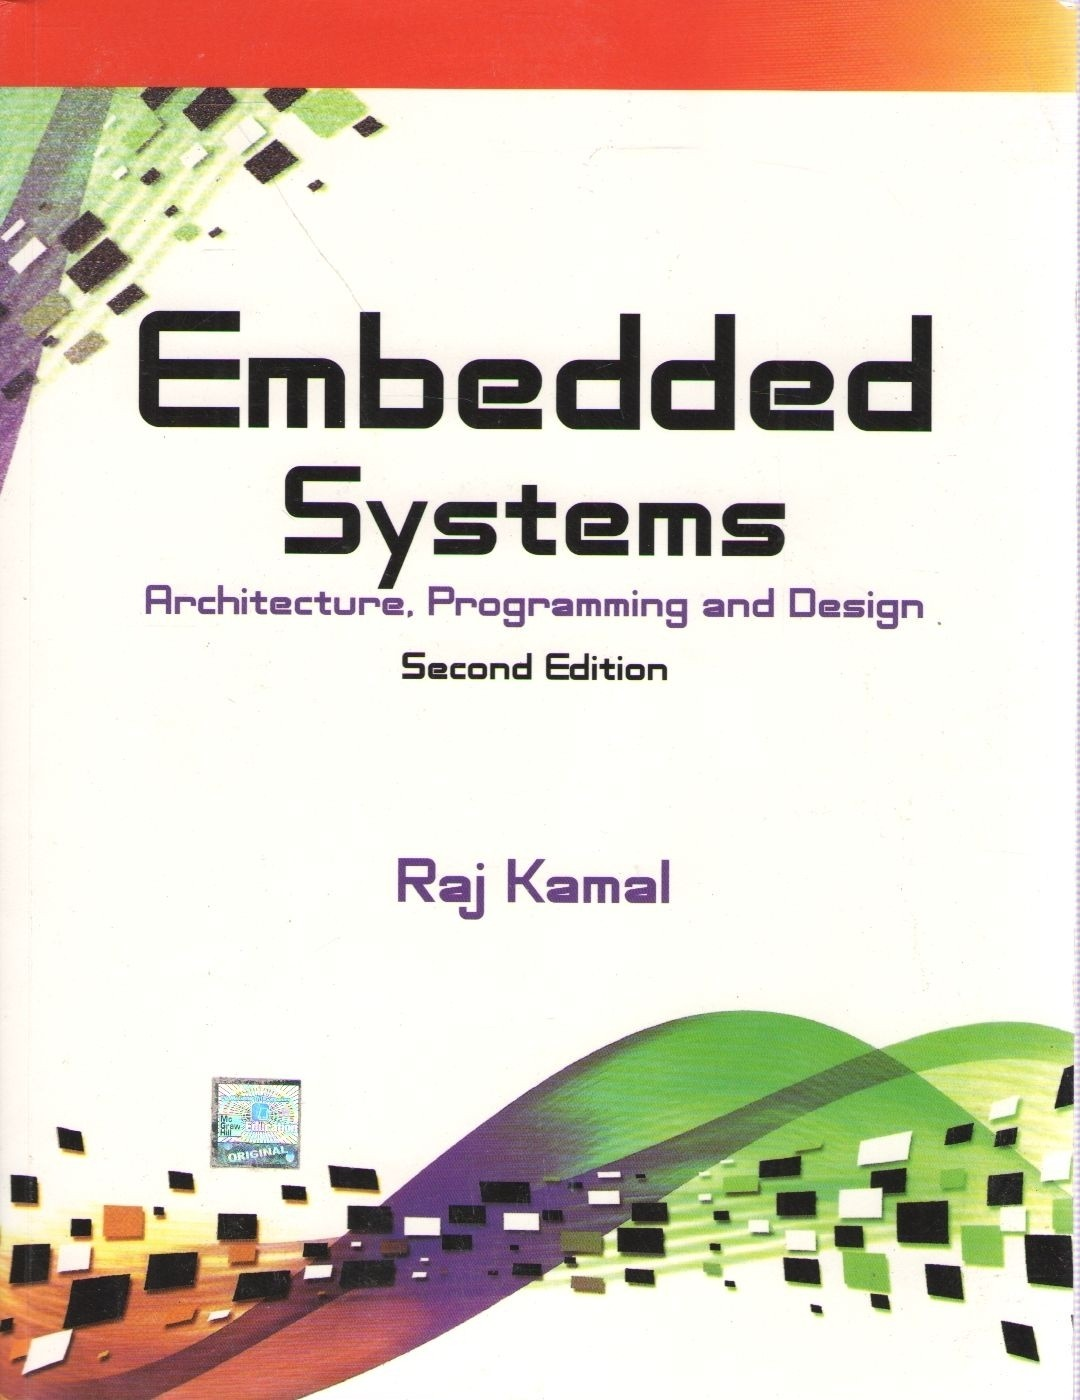 Embedded Systems Design Books Free Download